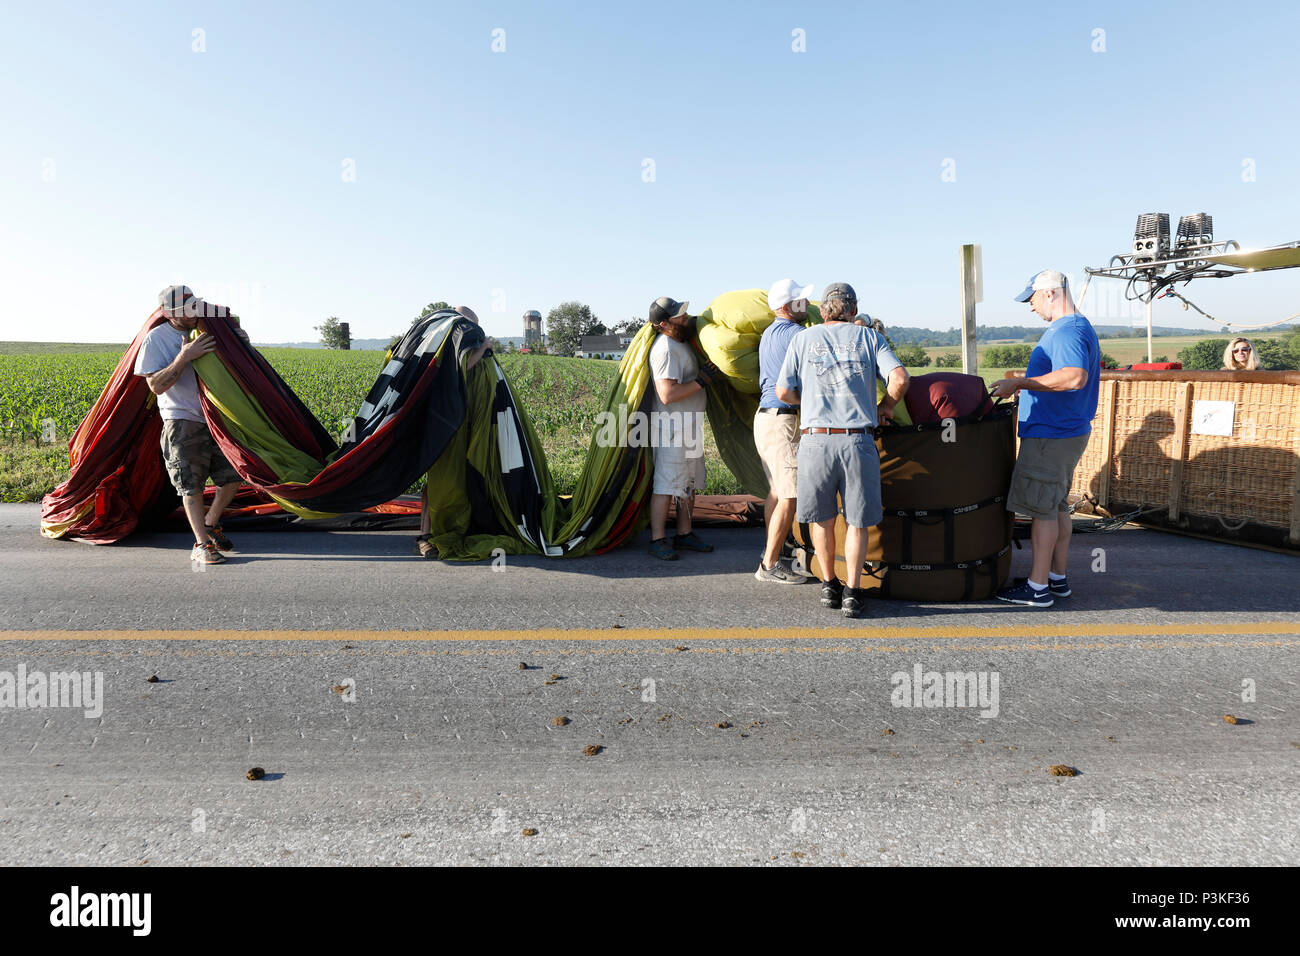 Passengers helping with folding hot air balloon after flight, Lancaster County, Pennsylvania, USA Stock Photo